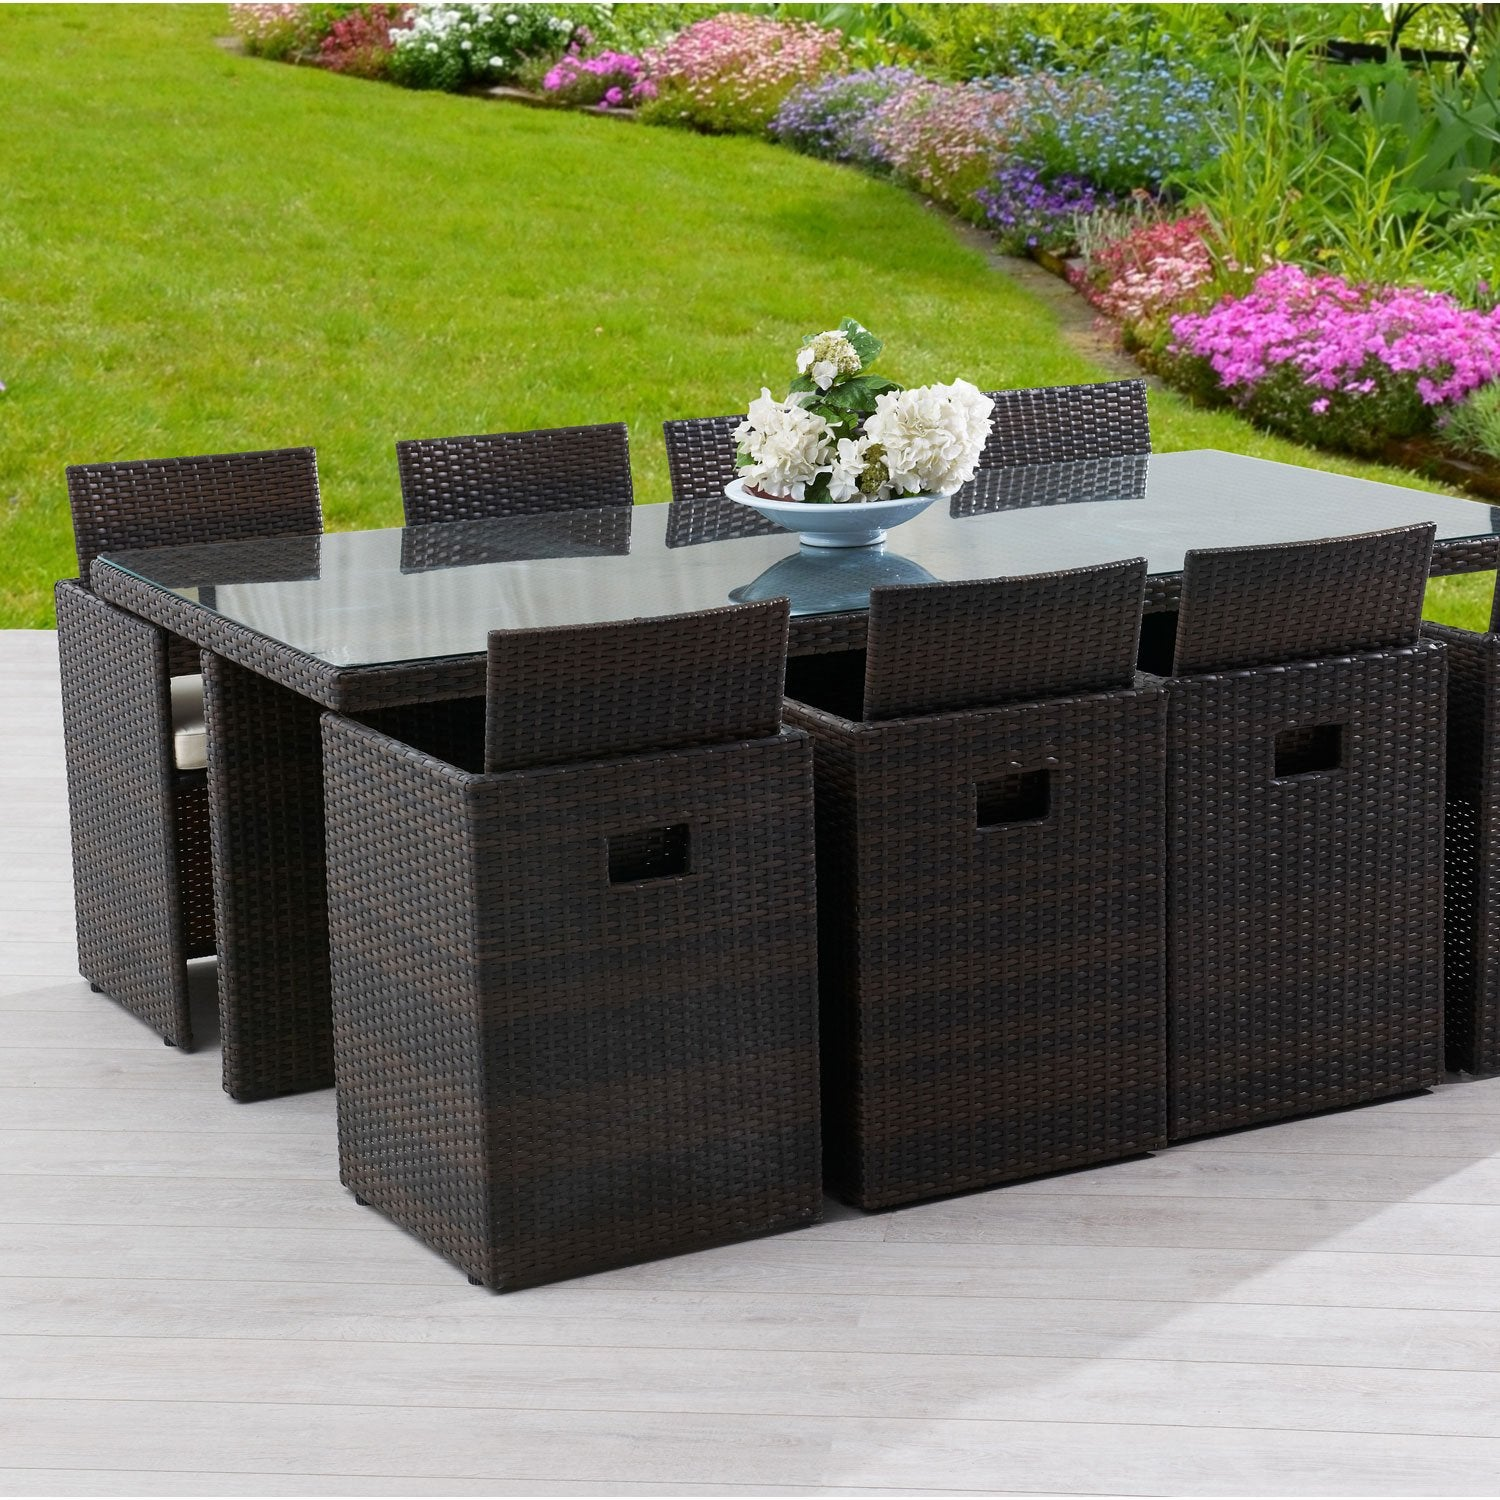 Salon de jardin encastrable r sine tress e marron 1 table for Protection meuble de jardin